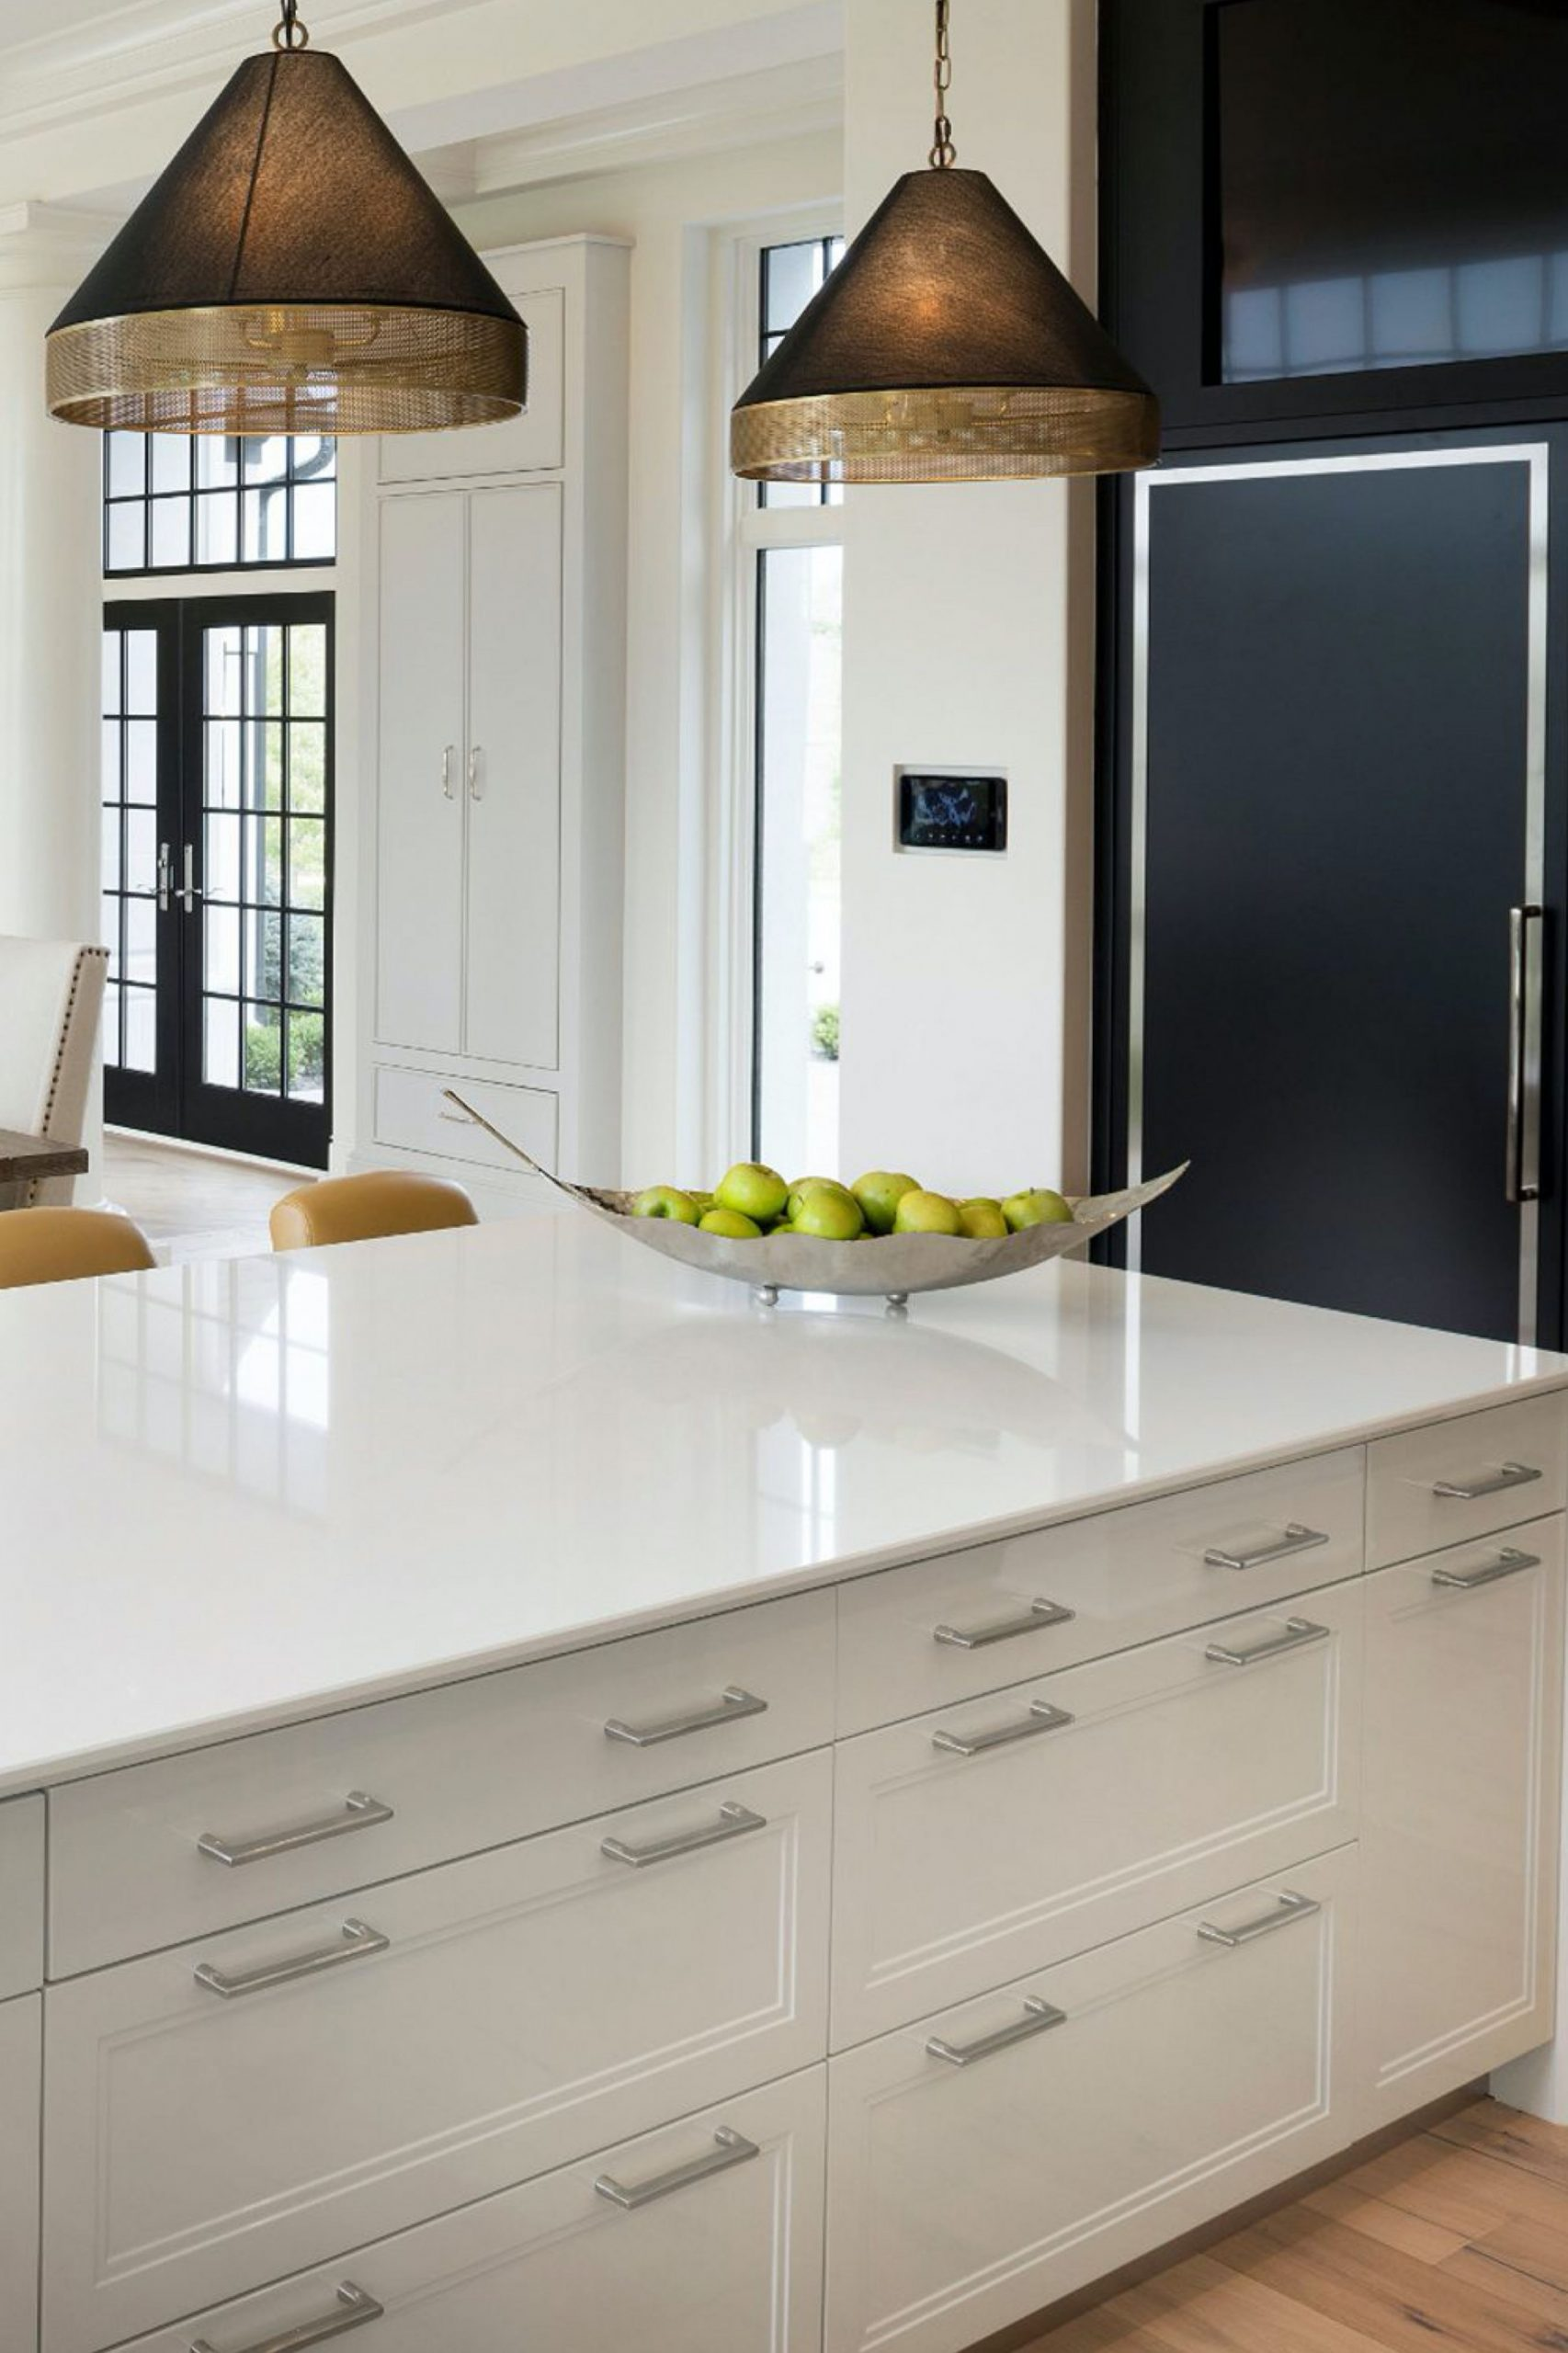 Pin on White Cabinet Kitchens - Whitehall Kitchen Cabinets